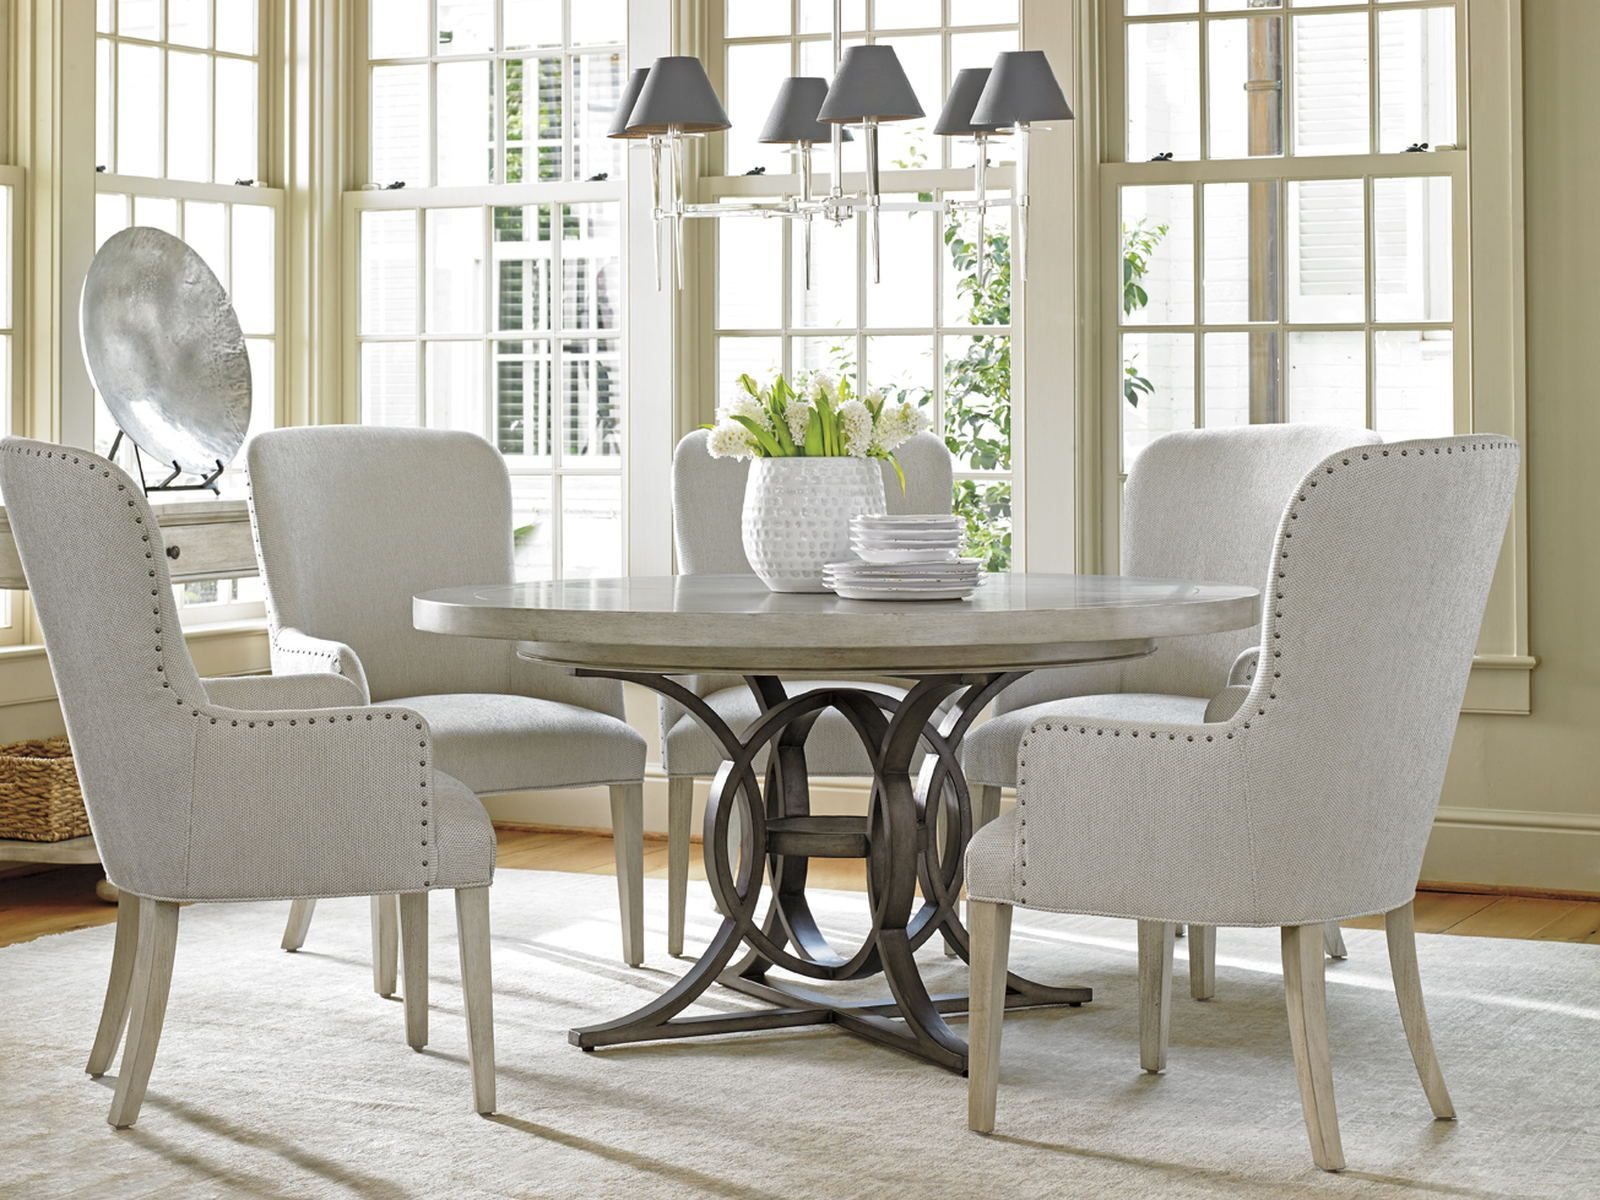 Lexington Oyster Bay 5 Piece Calerton Round Dining Set Oyster Bay Collection Lexington Brands By Dining Rooms Outlet Round Dining Room Sets Round Dining Room Dining Room Sets